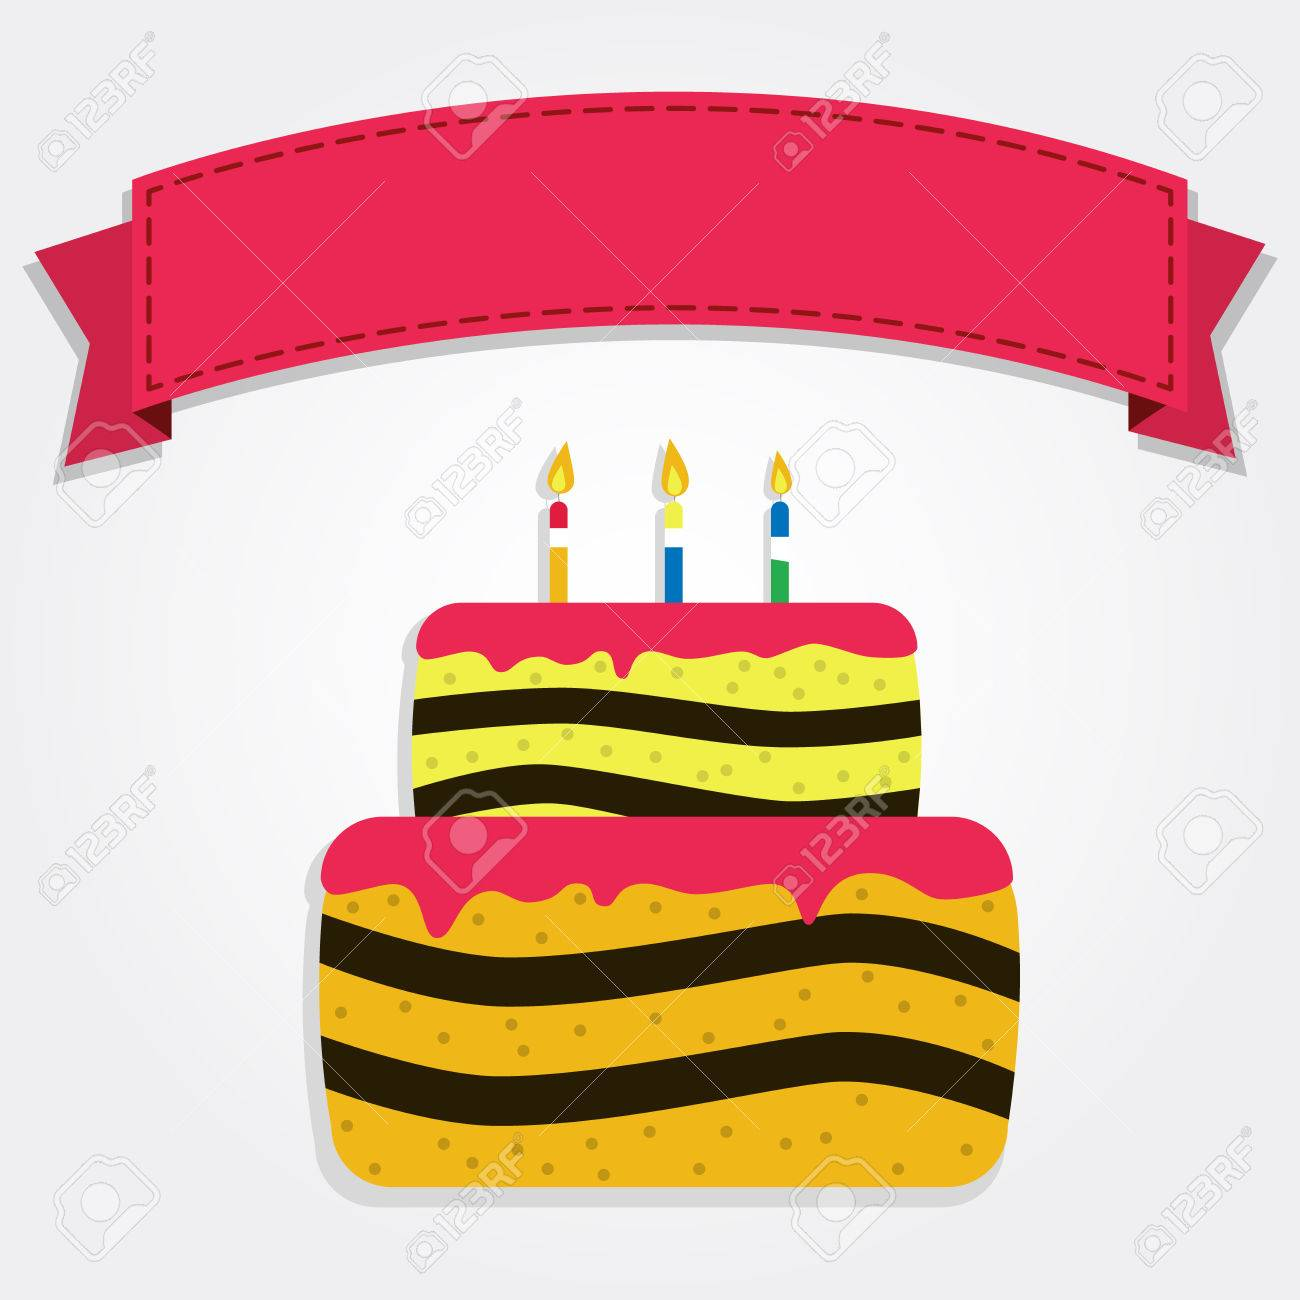 Happy Birthday Banner Decorated With A Colorful Cake Red Ribbon Empty Space For Writing